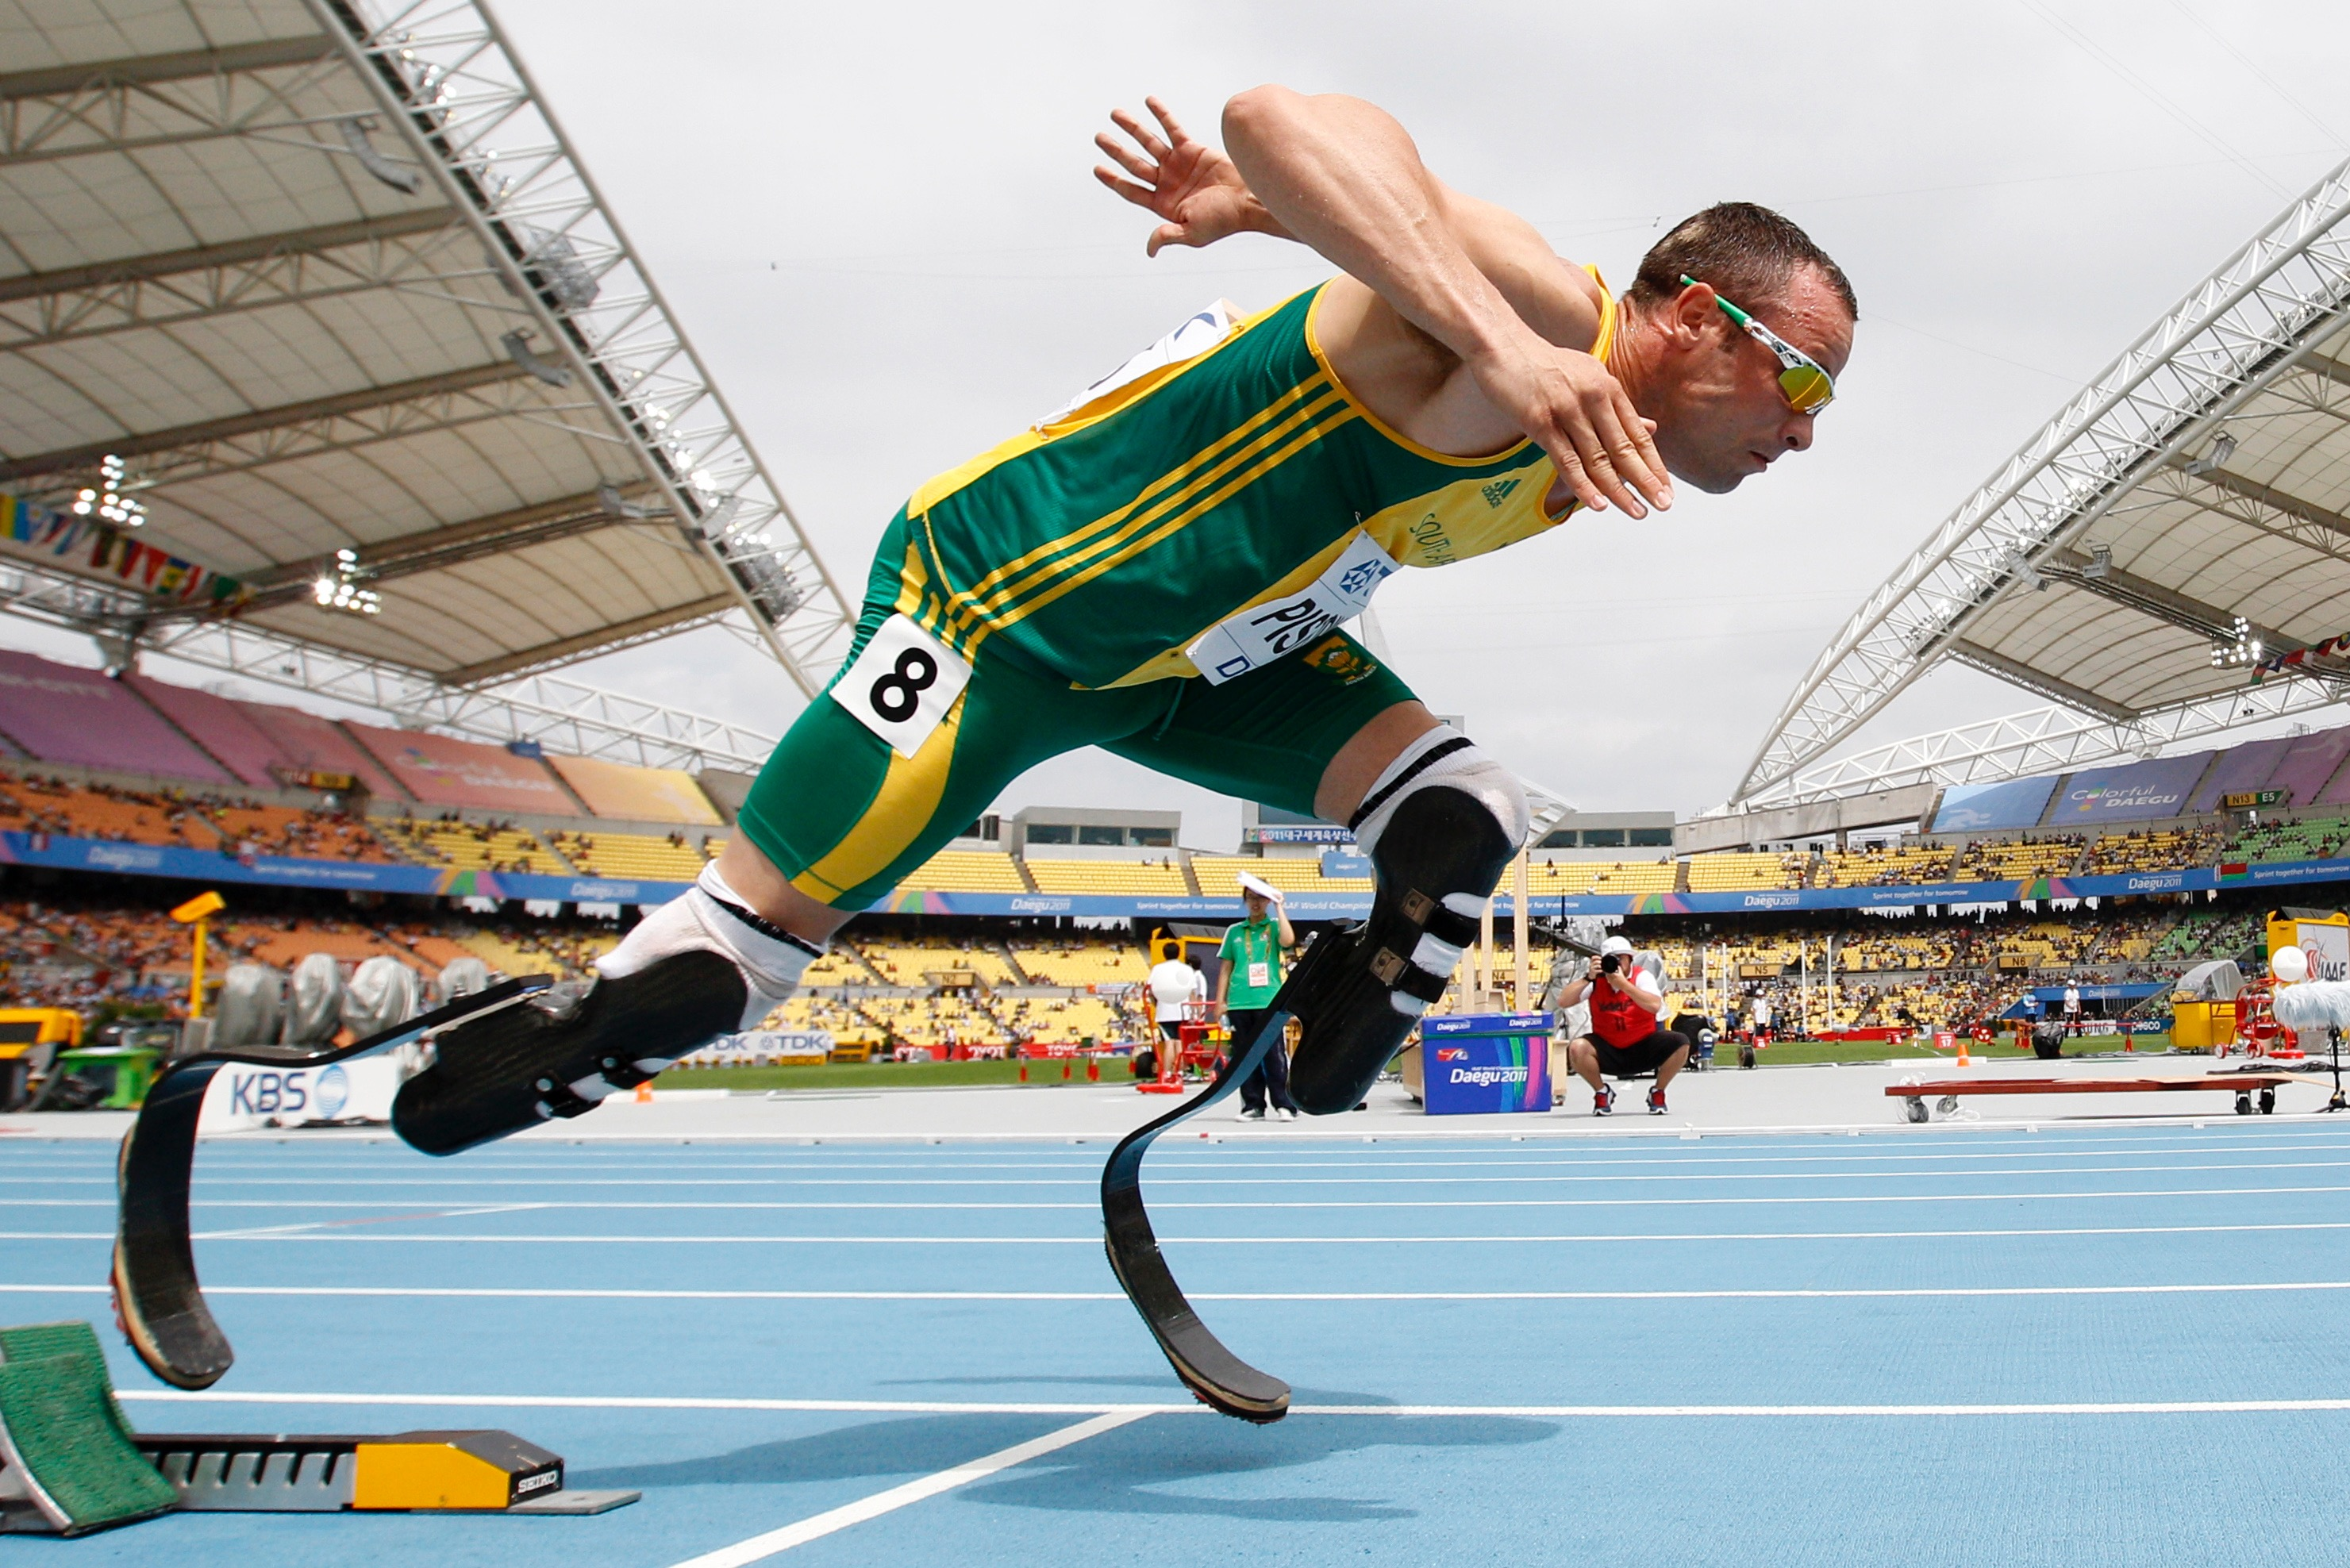 Oscar Pistorius of South Africa comes out of the starting blocks during his men's 400 metres heat at the IAAF World Championships in Daegu August 28, 2011.